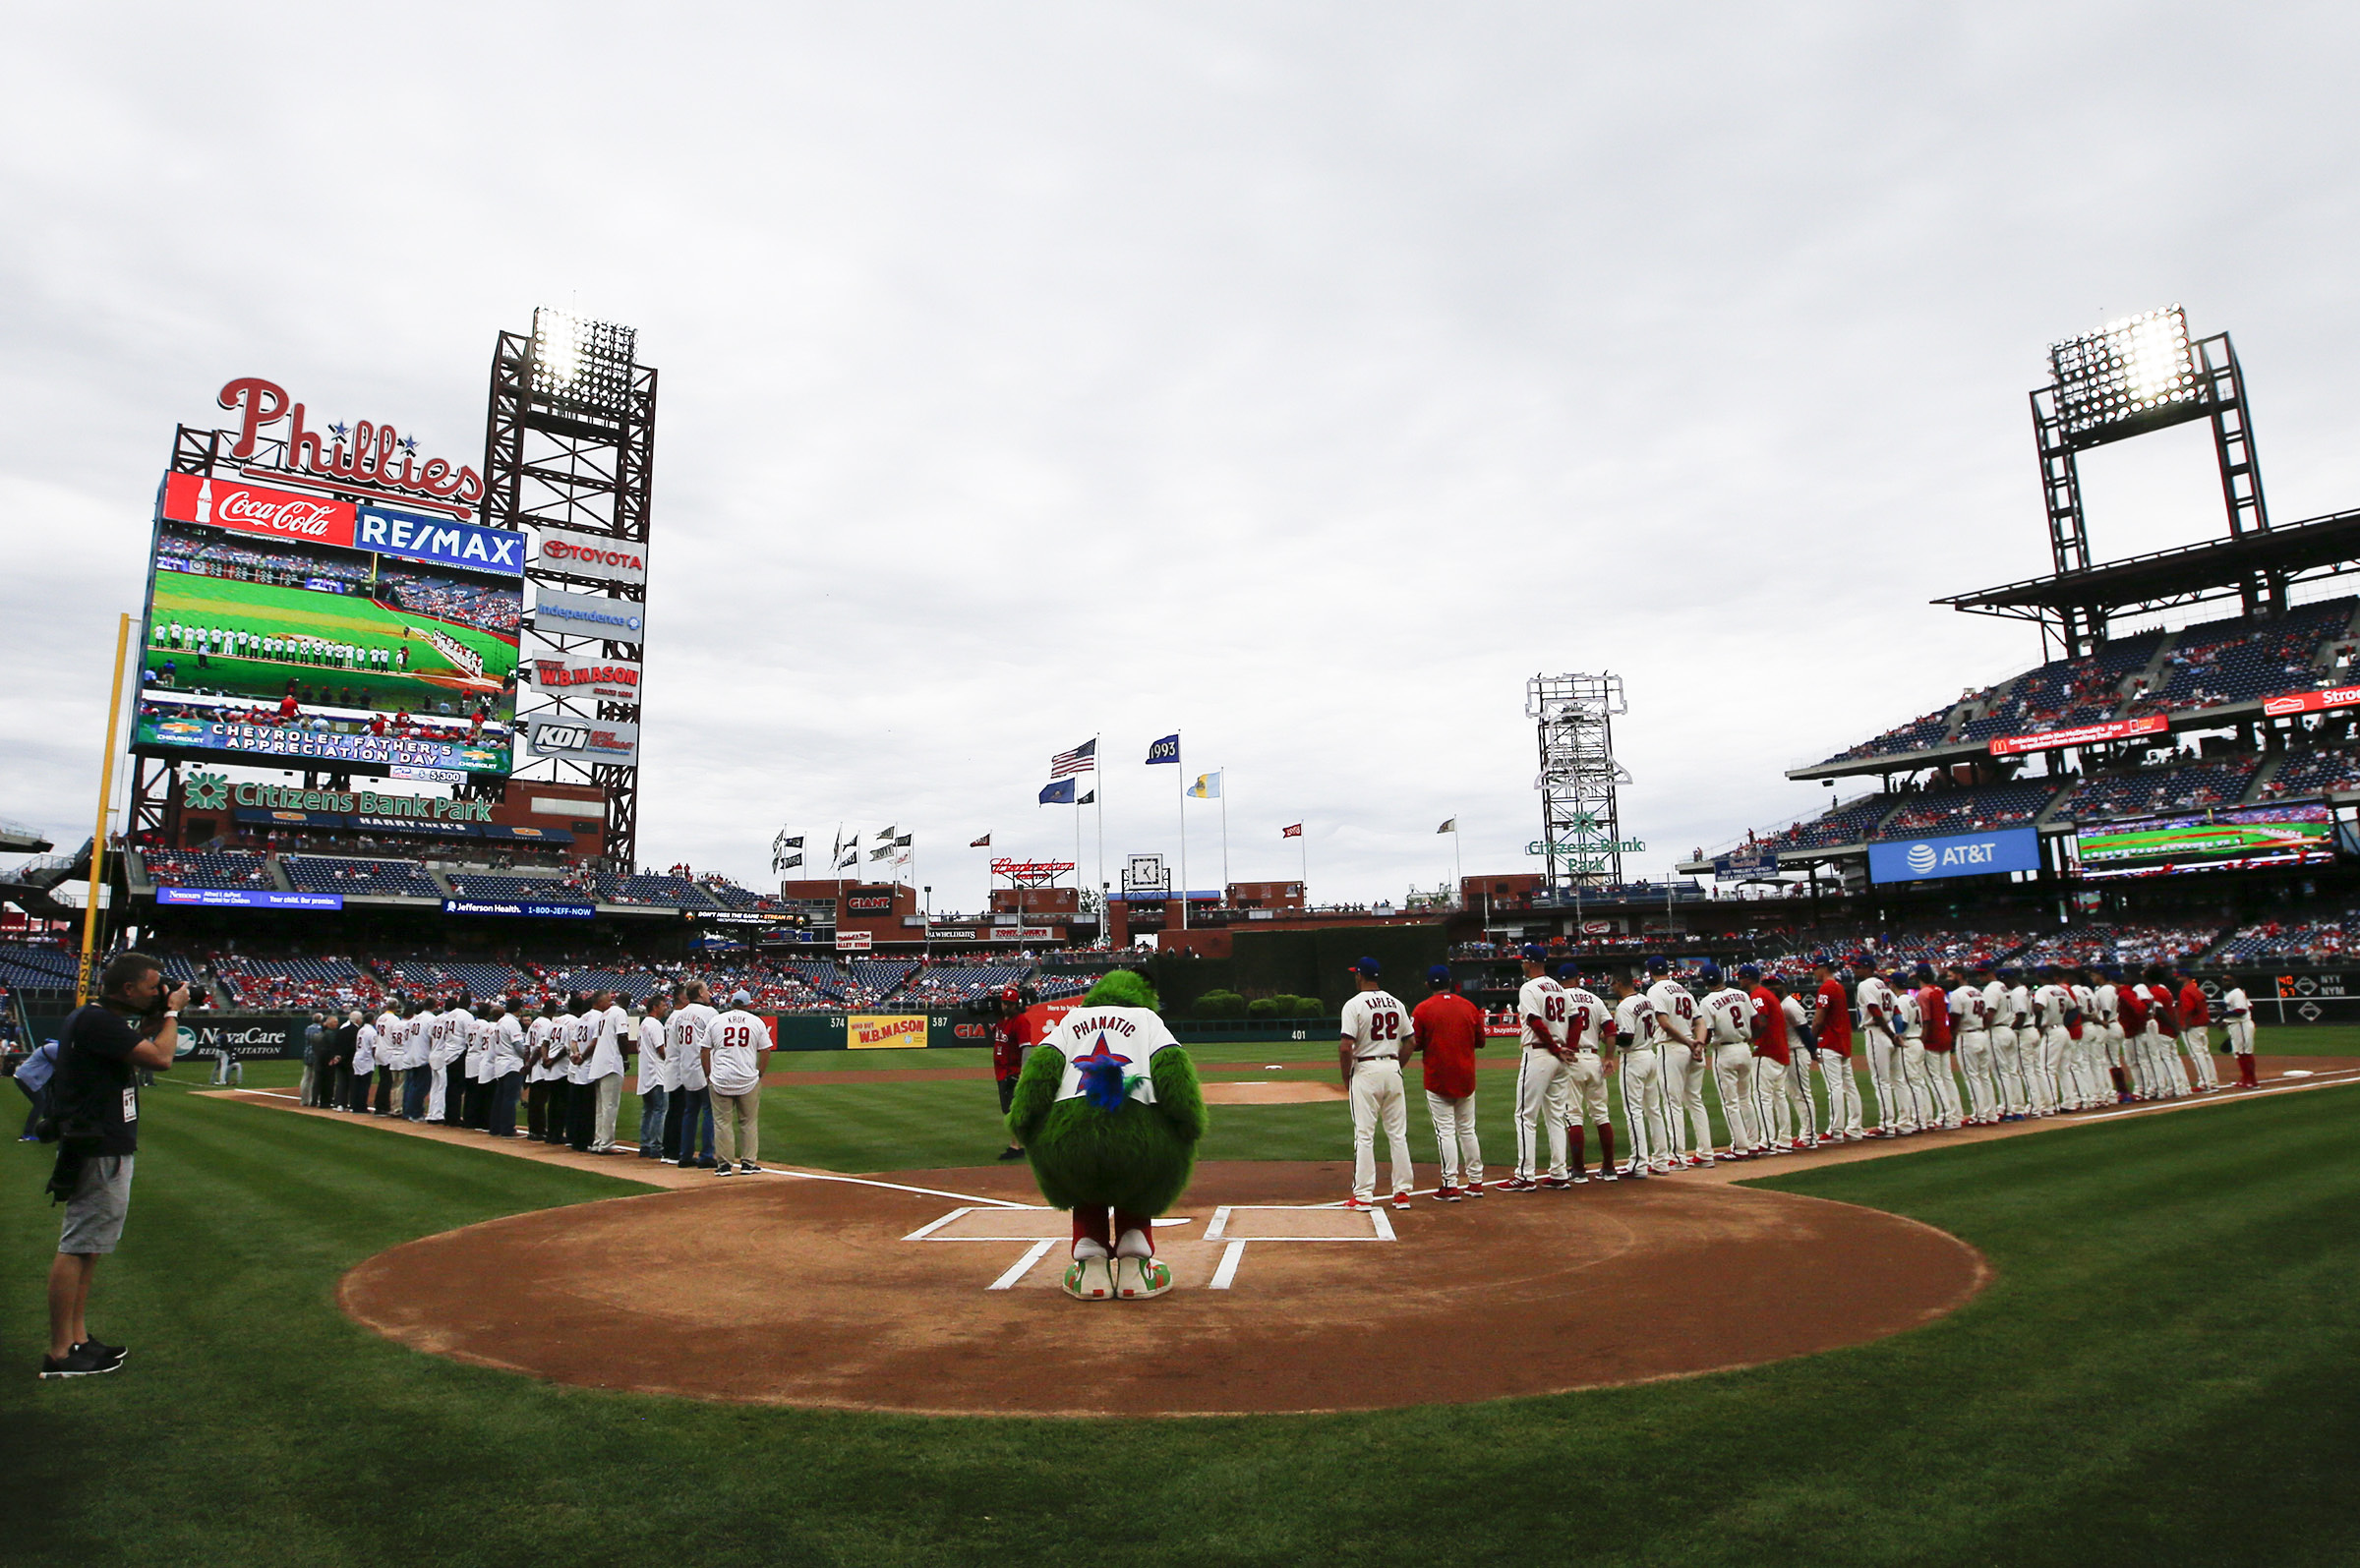 Players from the 1993 Phillies and current members line-up during a moment of silence for 1993 team members who have passed away before the Phillies played the Milwaukee Brewers on Sunday, June 10, 2018 in Philadelphia.